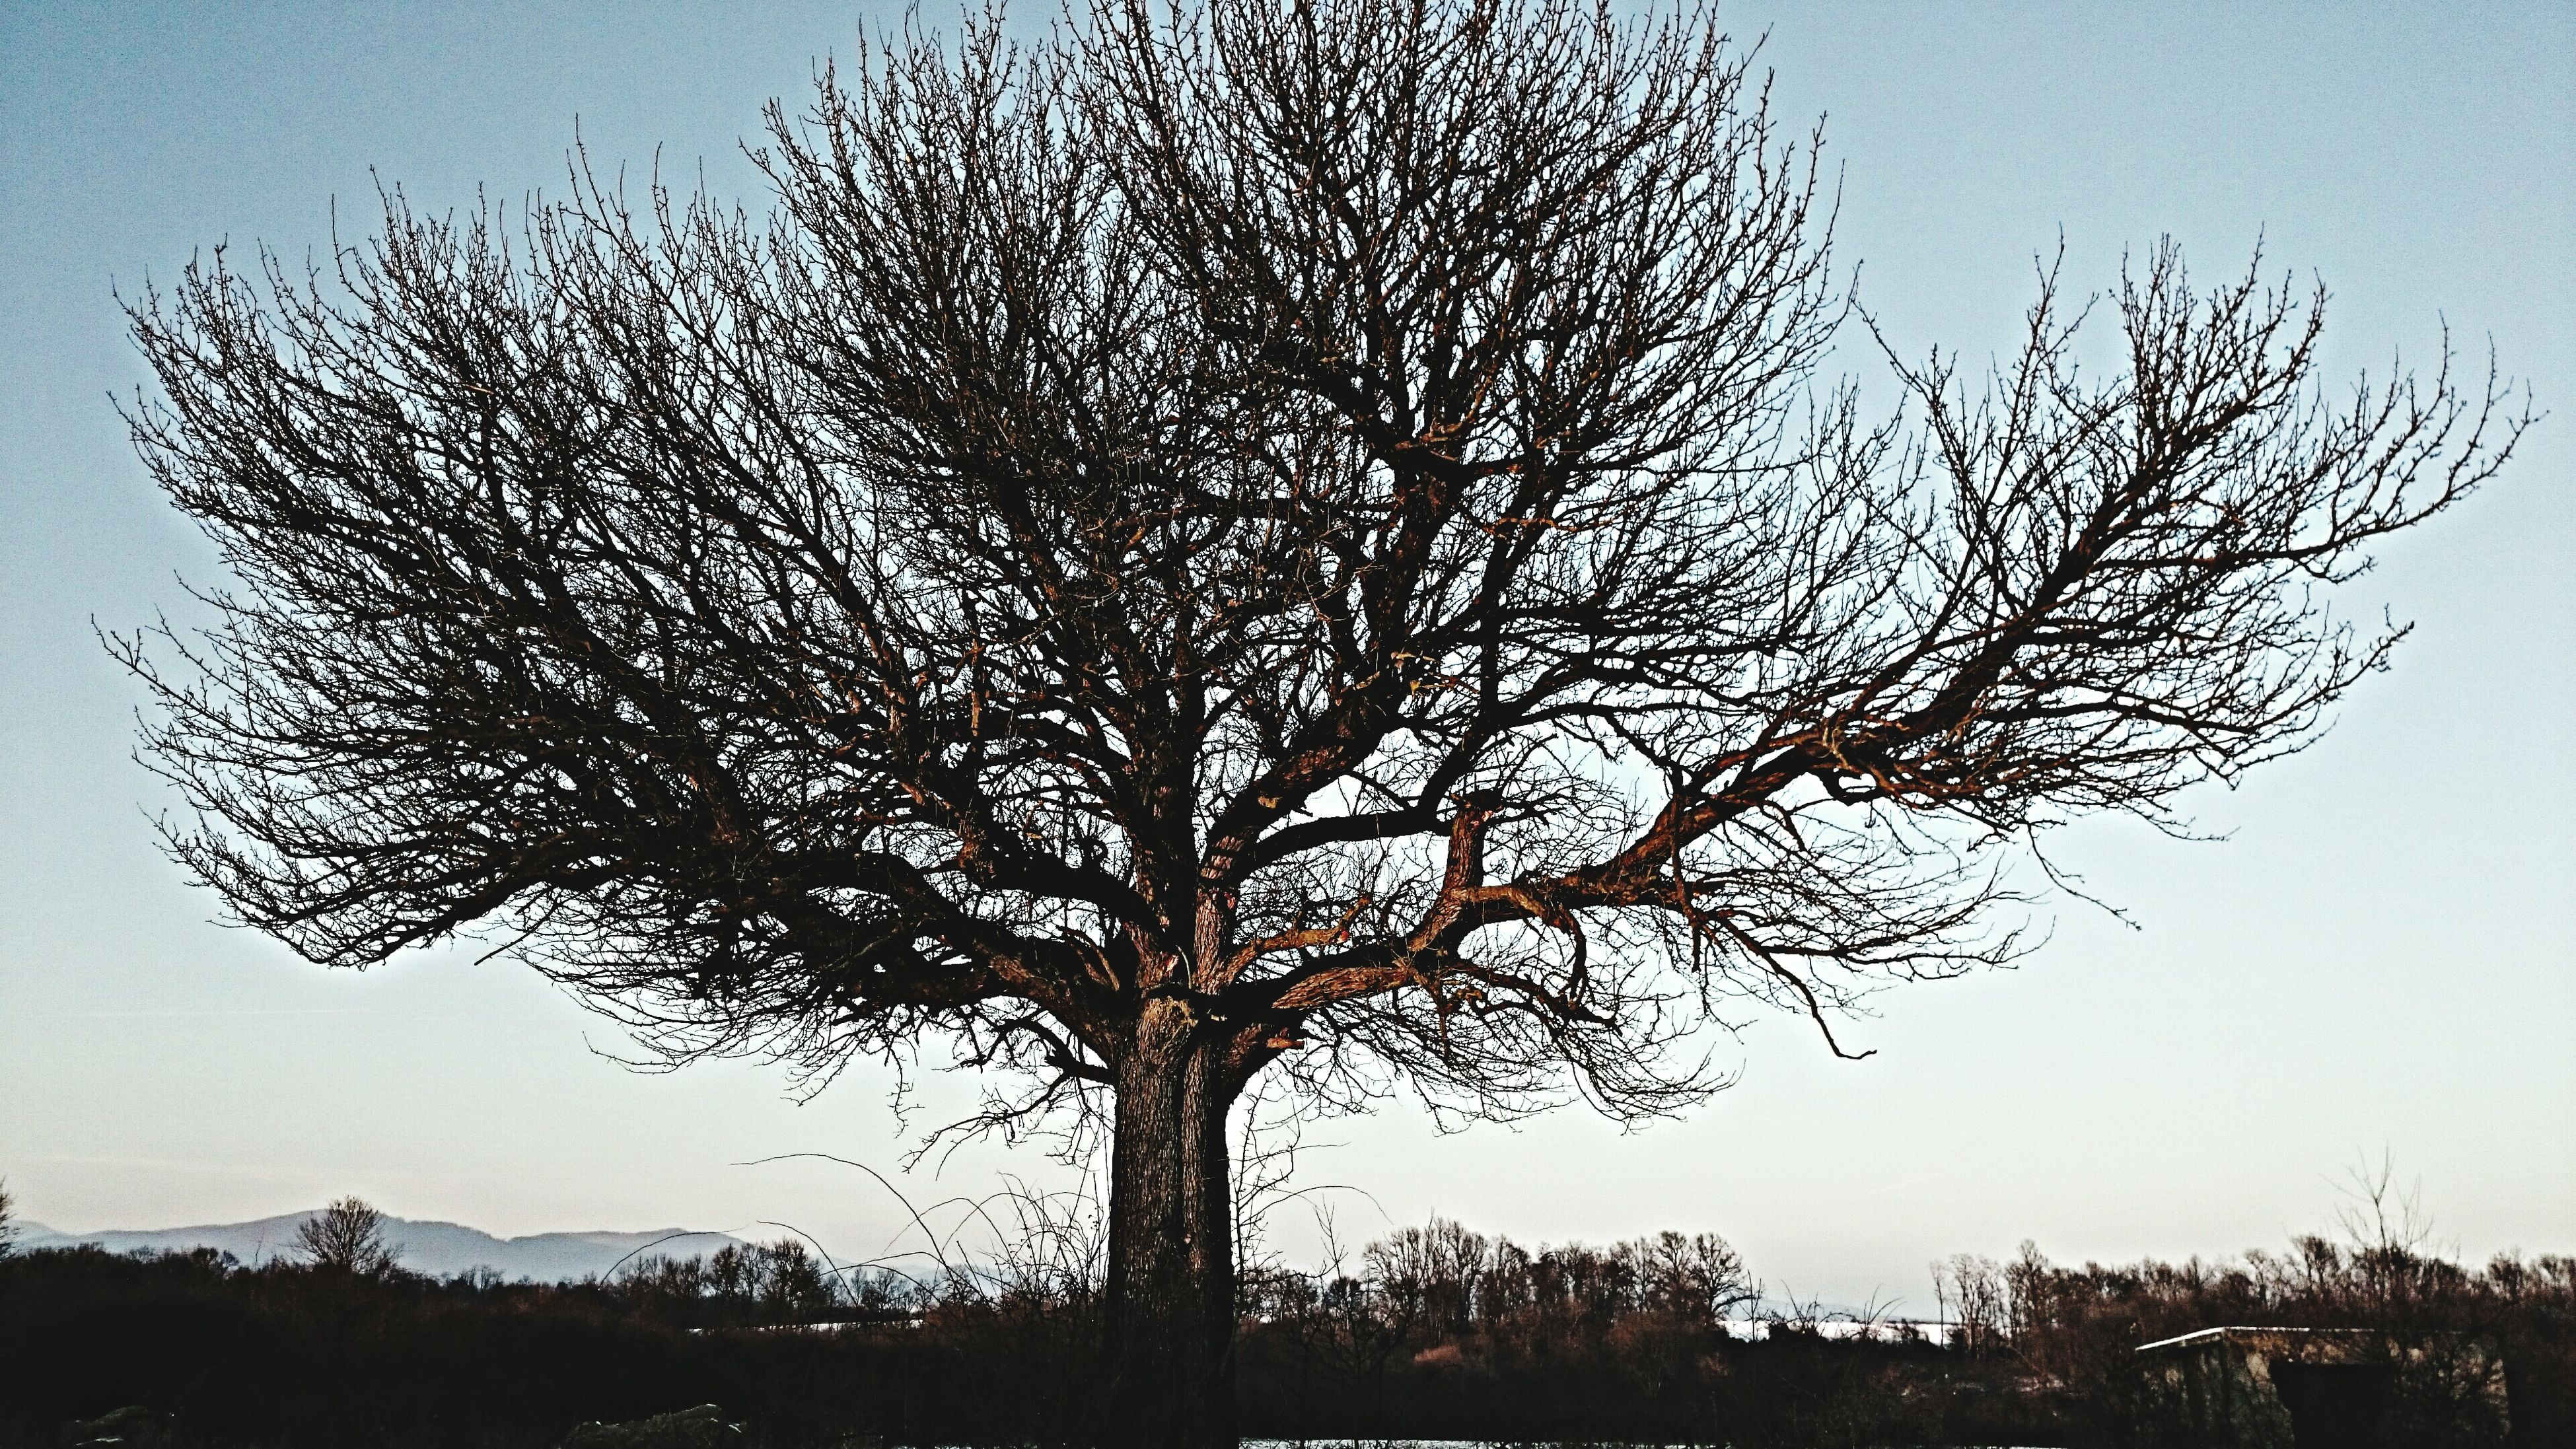 tree, branch, bare tree, clear sky, tranquility, nature, tree trunk, tranquil scene, beauty in nature, sky, silhouette, low angle view, growth, scenics, landscape, single tree, field, no people, outdoors, day